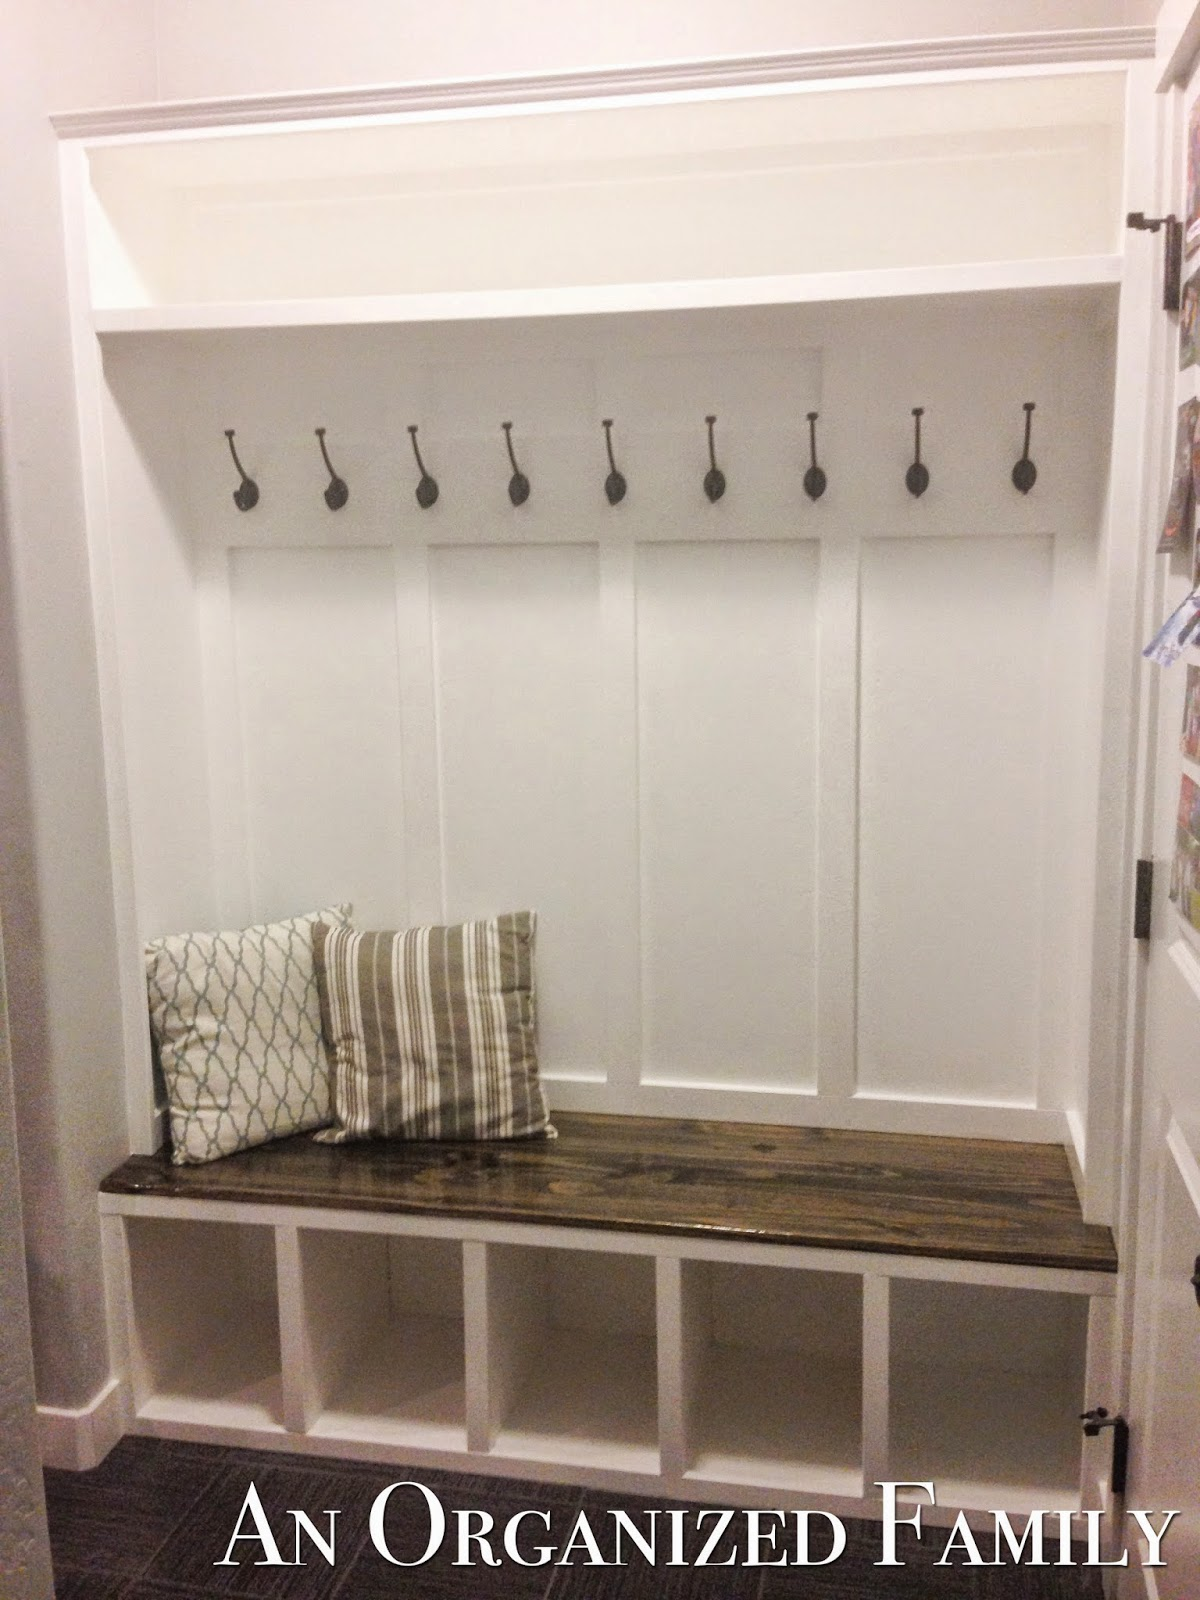 Nissa-Lynn Interiors: How to Build A Mudroom Bench By Amanda!